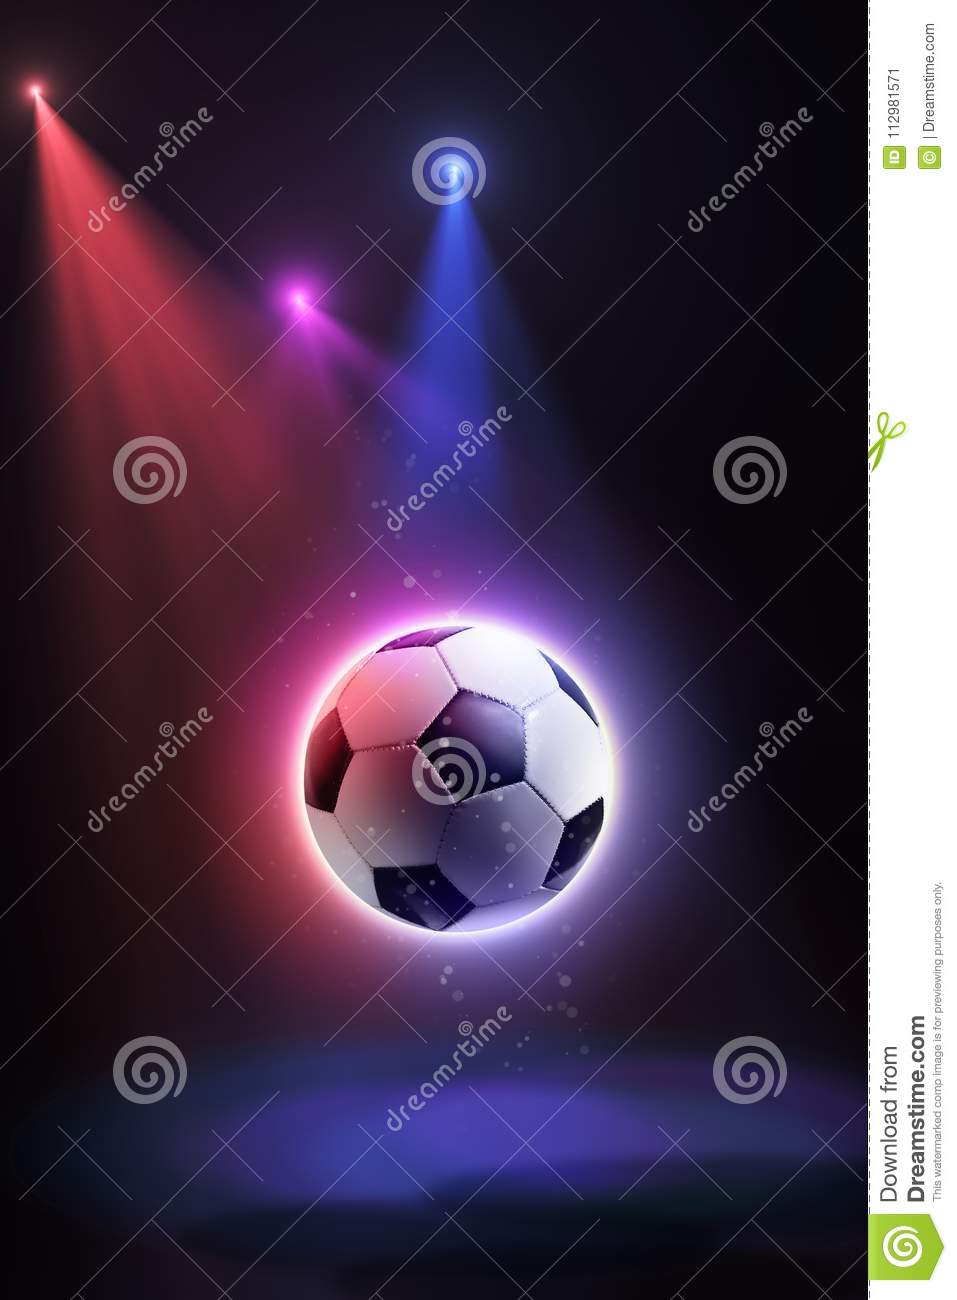 Soccer ball, floating in space and illuminated by the rays on an abstract background